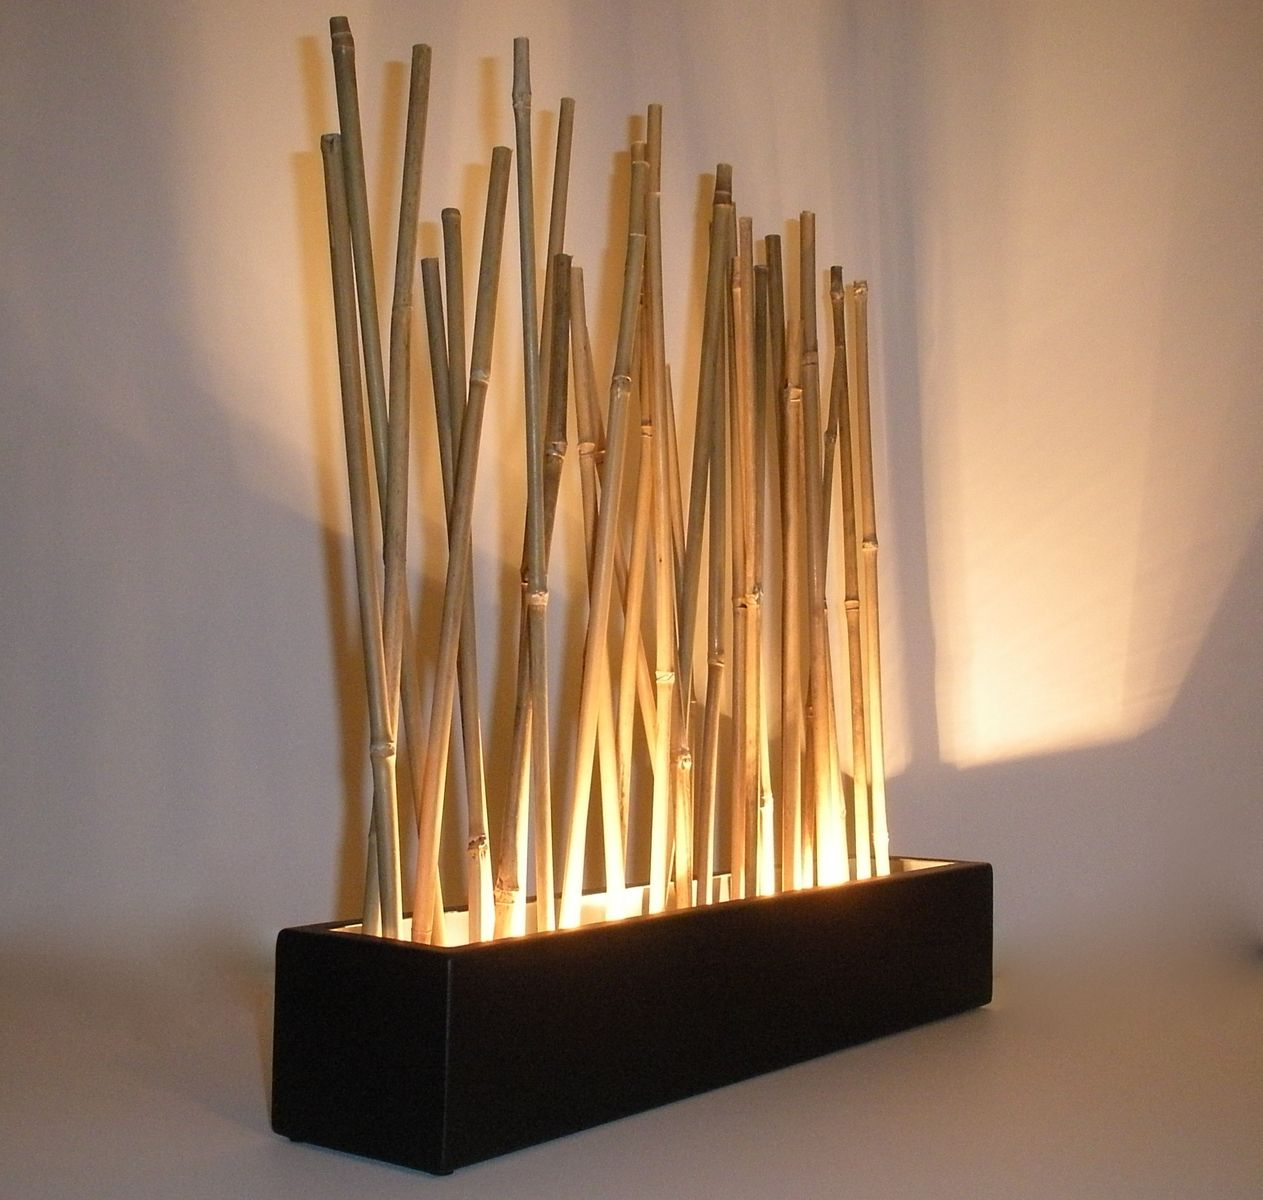 Light Pole Japan: Hand Crafted Bamboo Led Mood Lighting